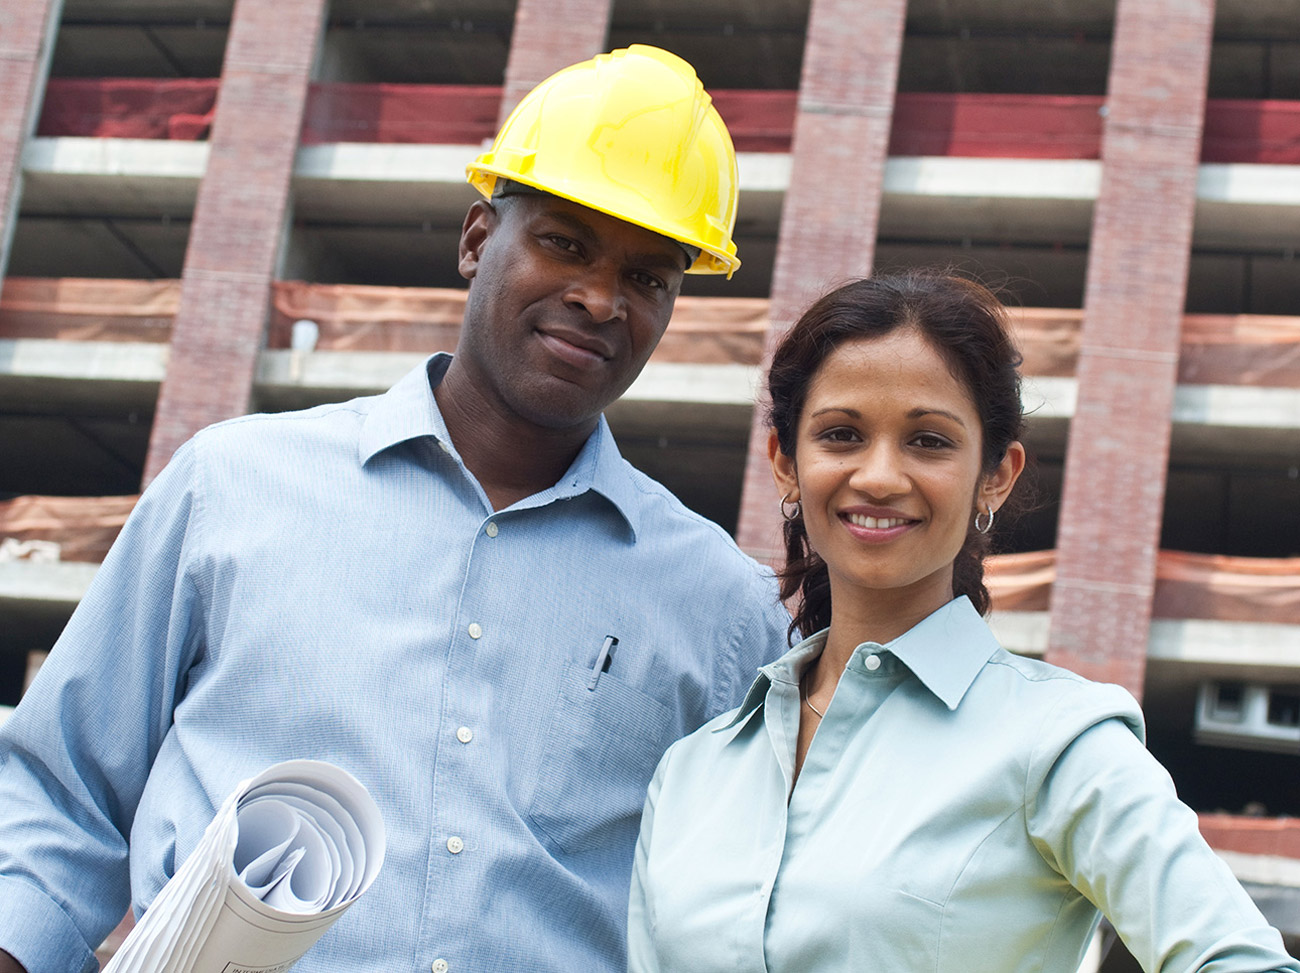 Man in hardhat and woman posed in front of a construction site